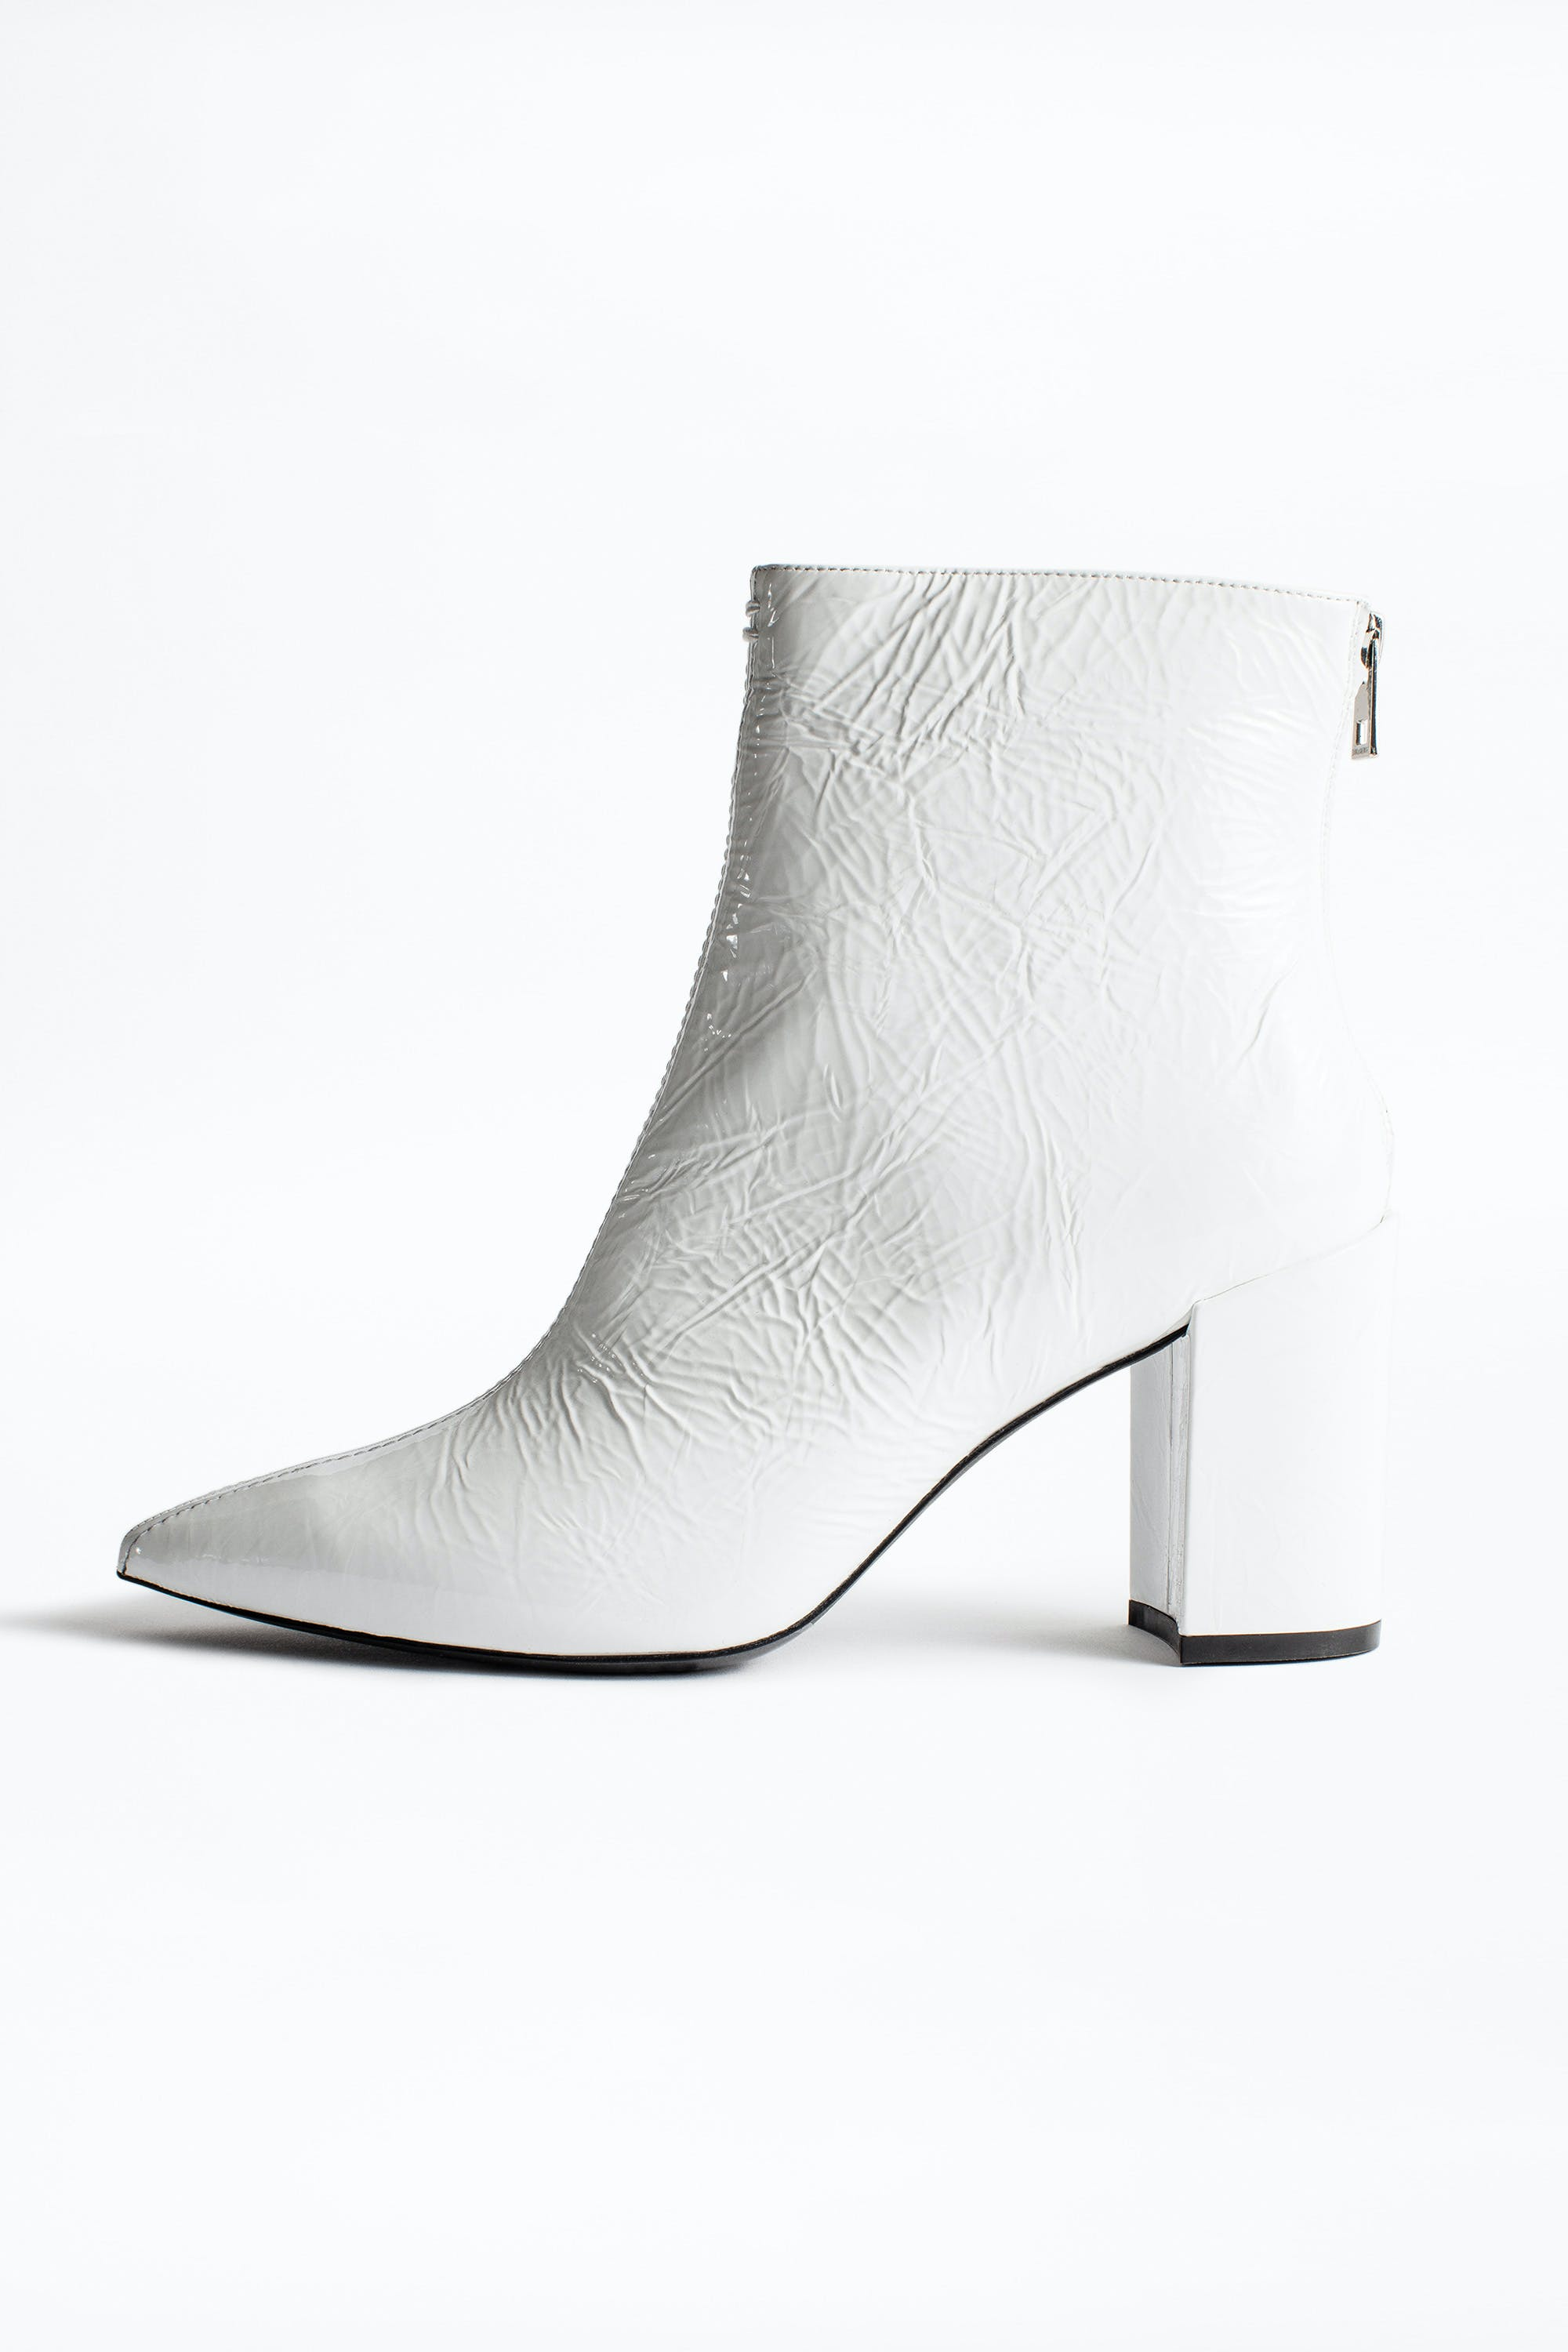 Glimmer Vernis Ankle Boots - boots